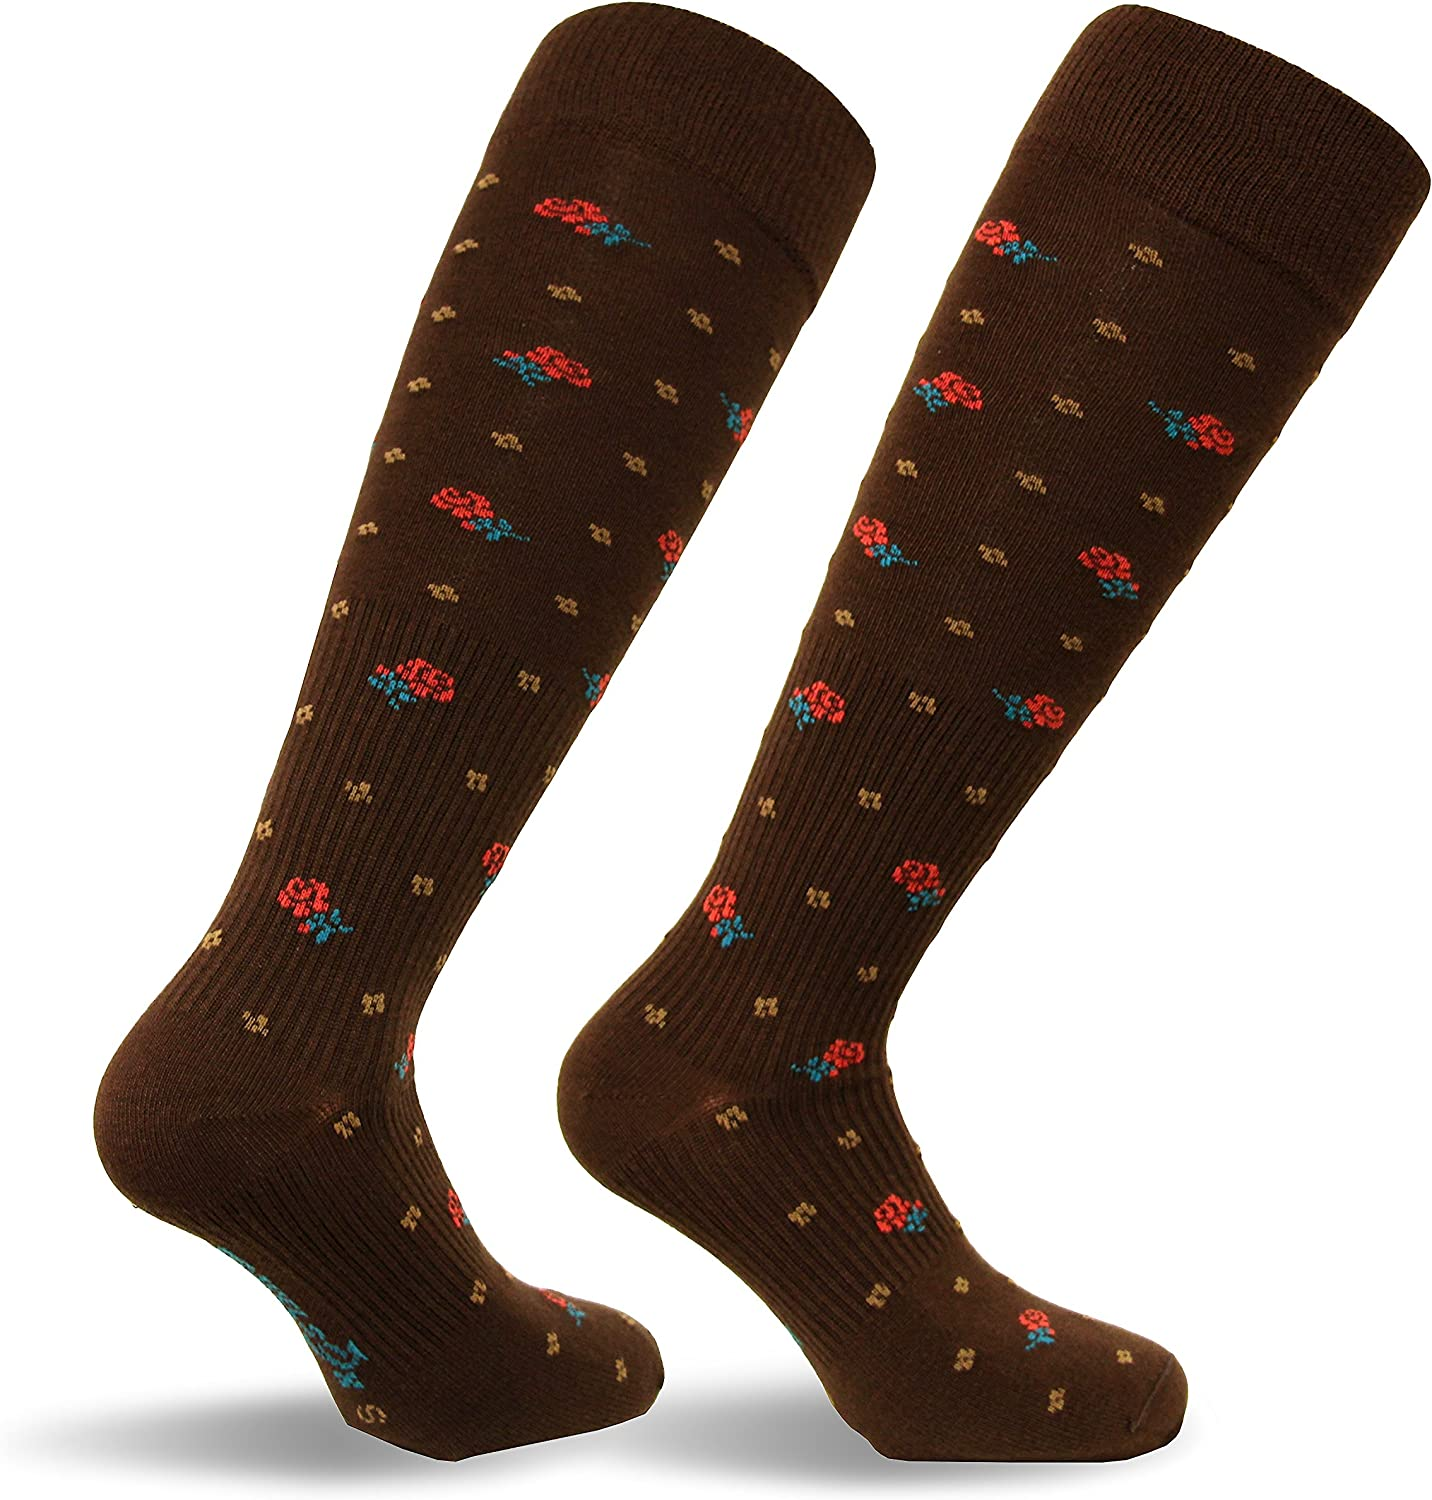 Travel Travelsox Italy Ladies Graduated Compression Socks TS0867 Floral Womens Coolmax Dress Play,